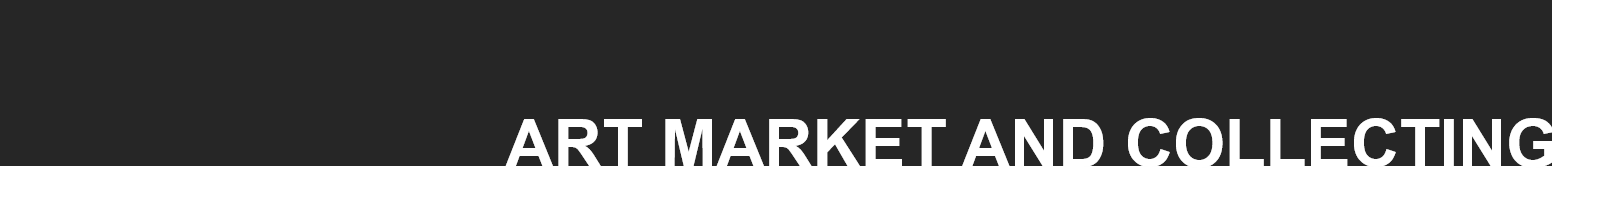 Art market and collecting